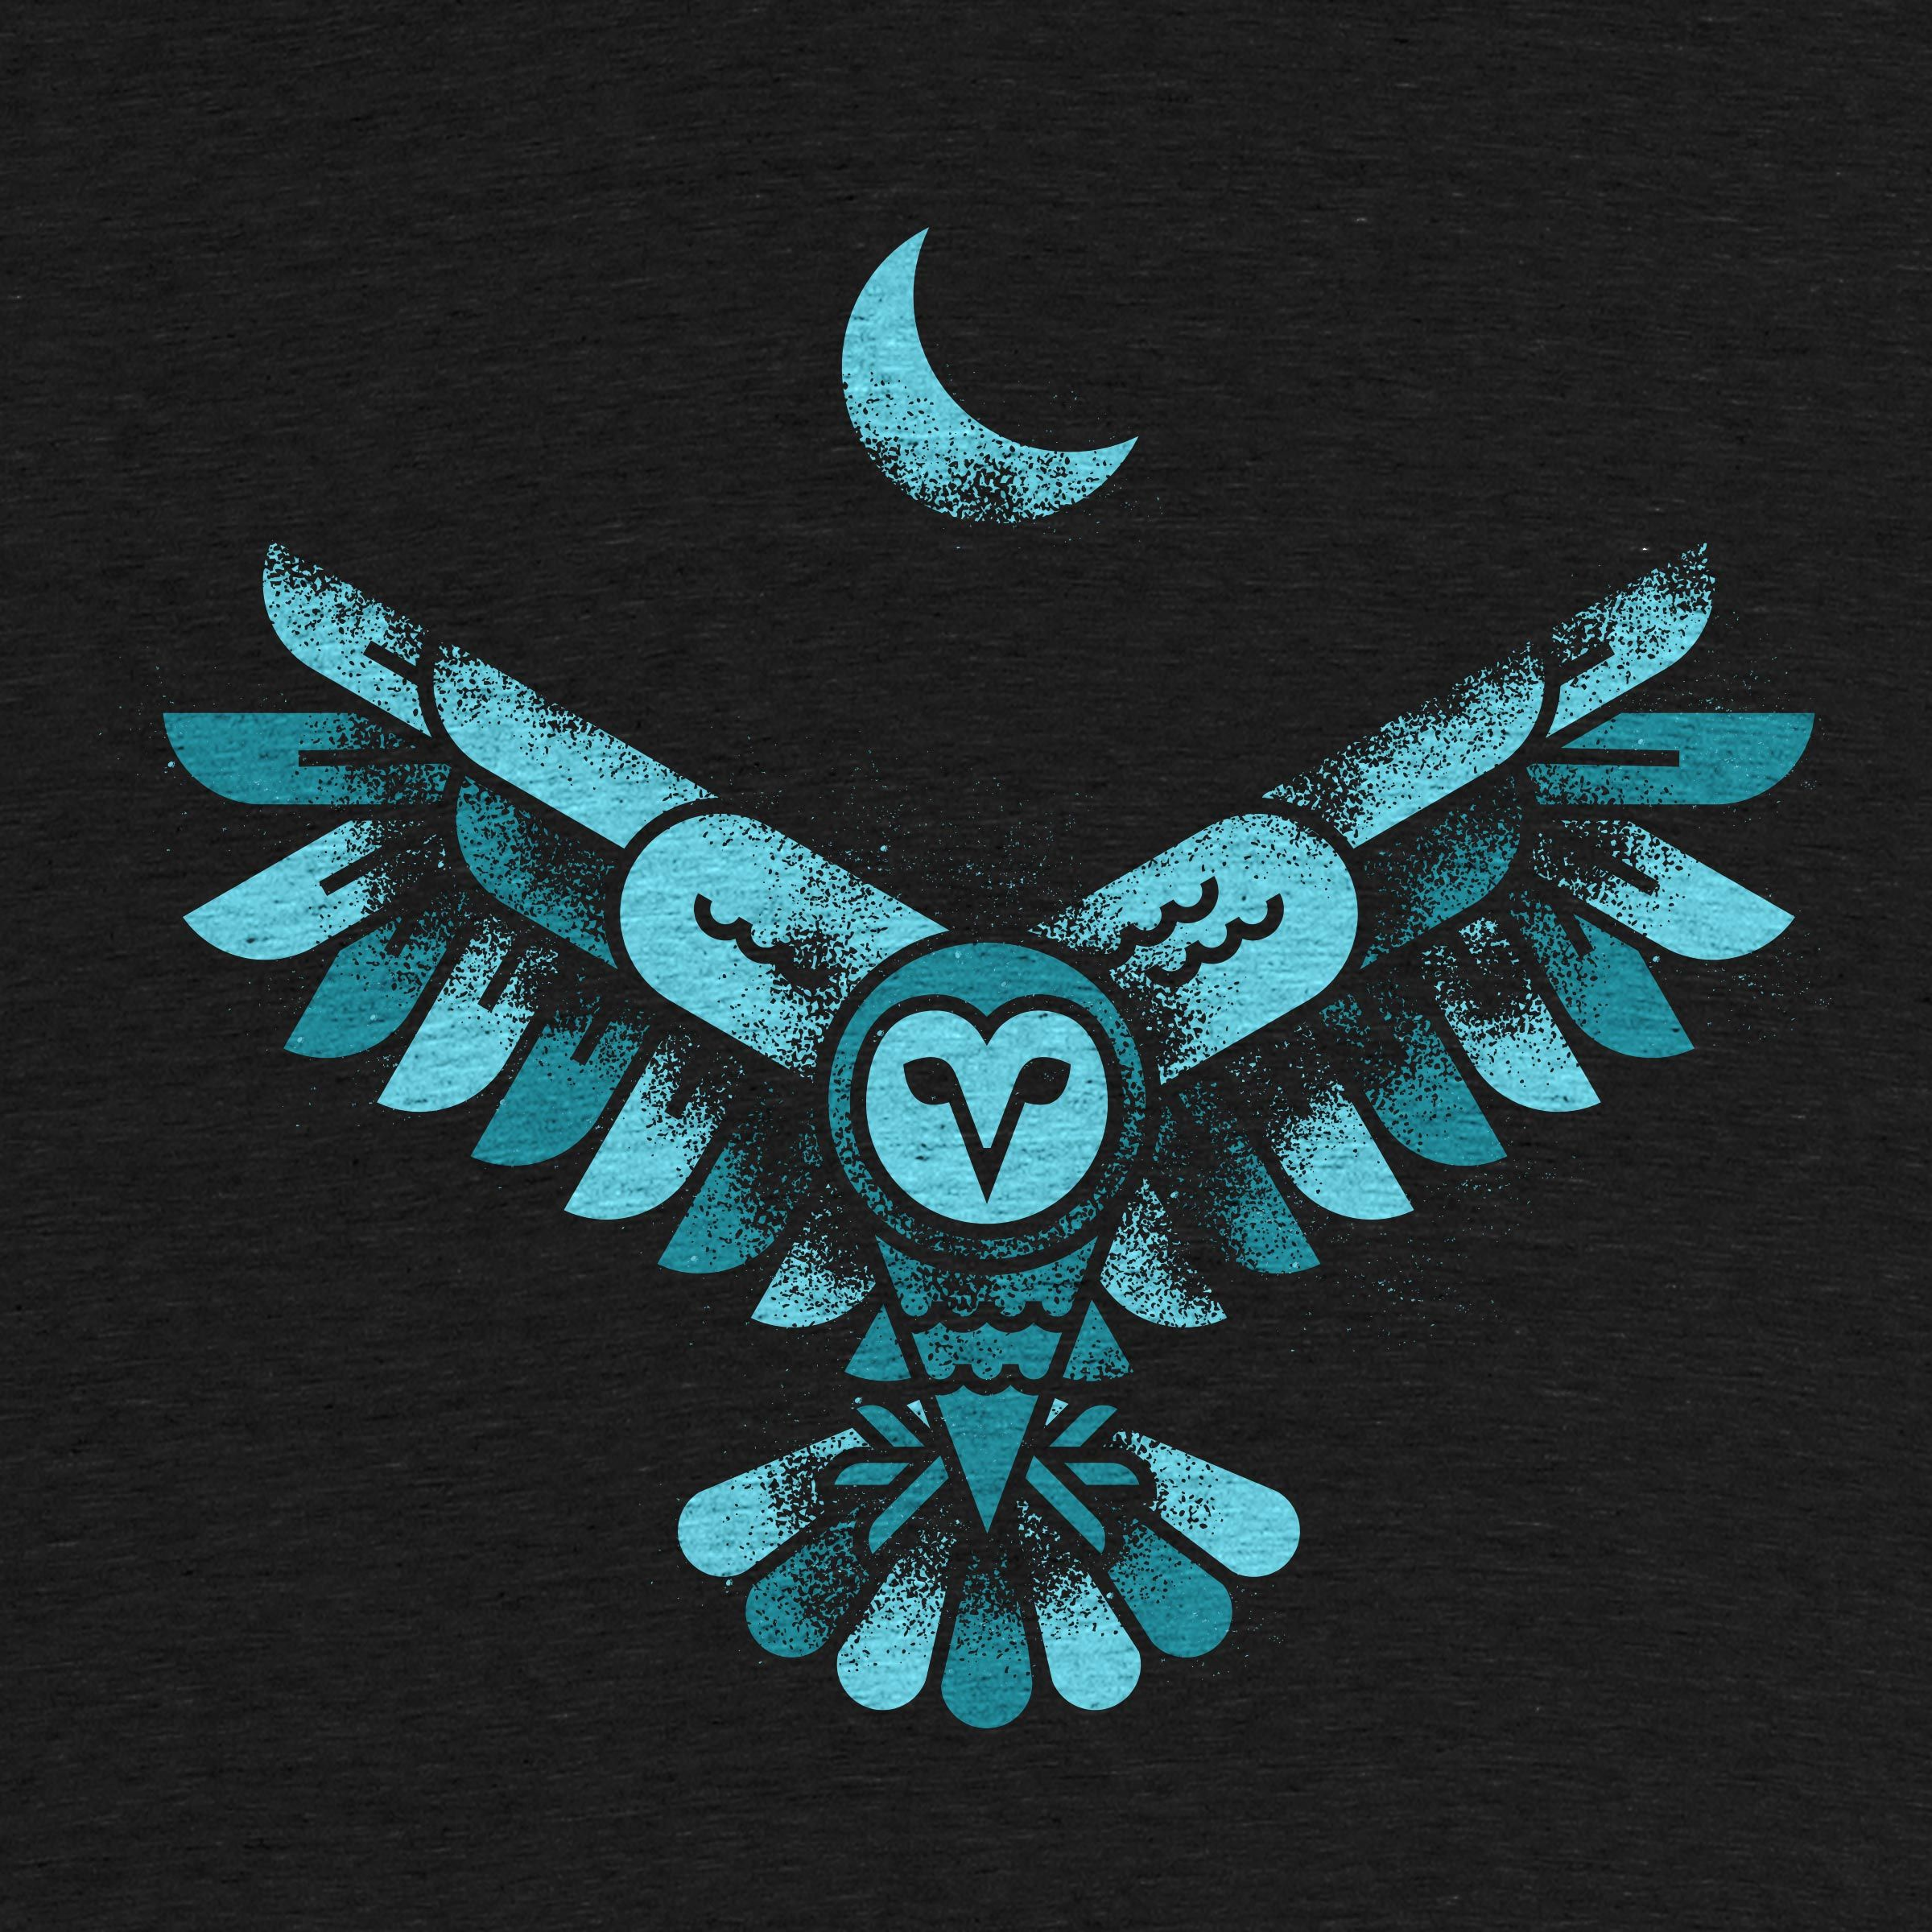 Night Owl by Peter Komierowski Owl wallpaper, Night owl